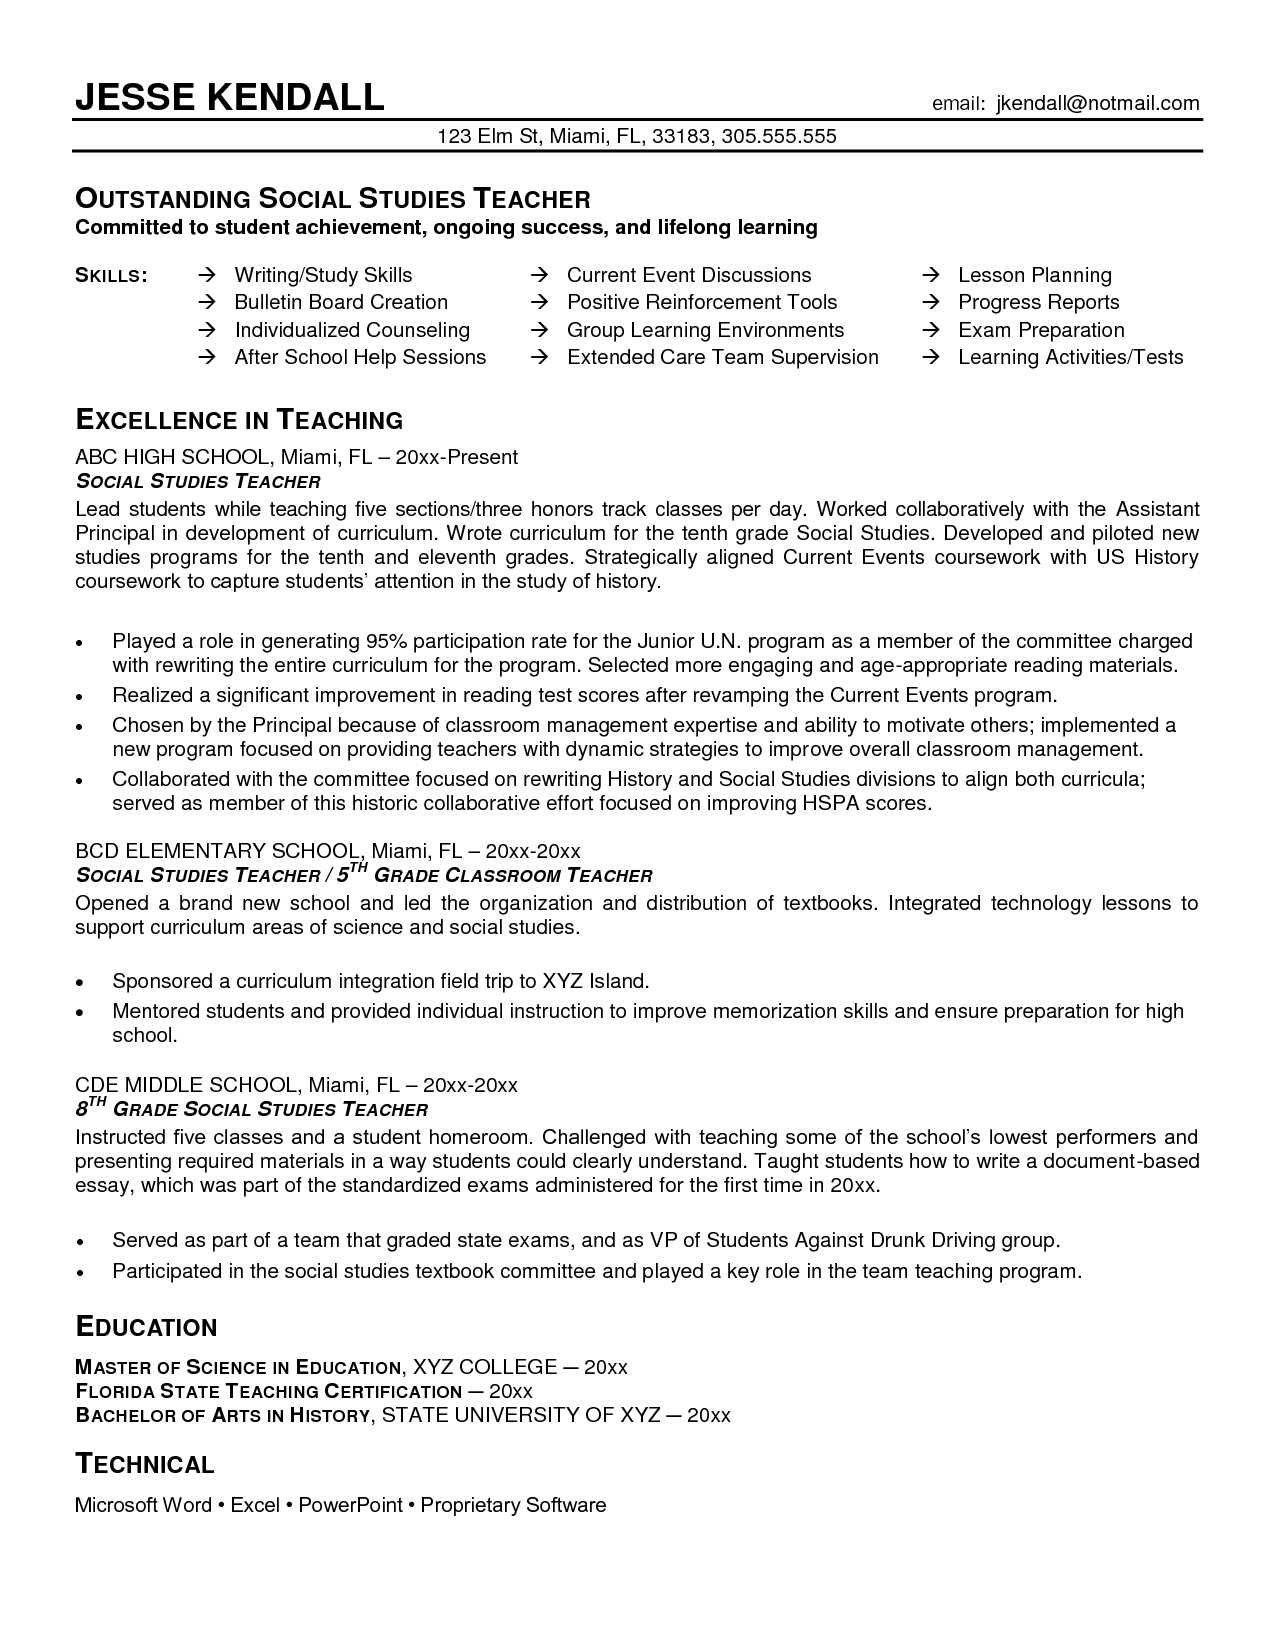 History Teacher Sample Resume  Google Search  Work